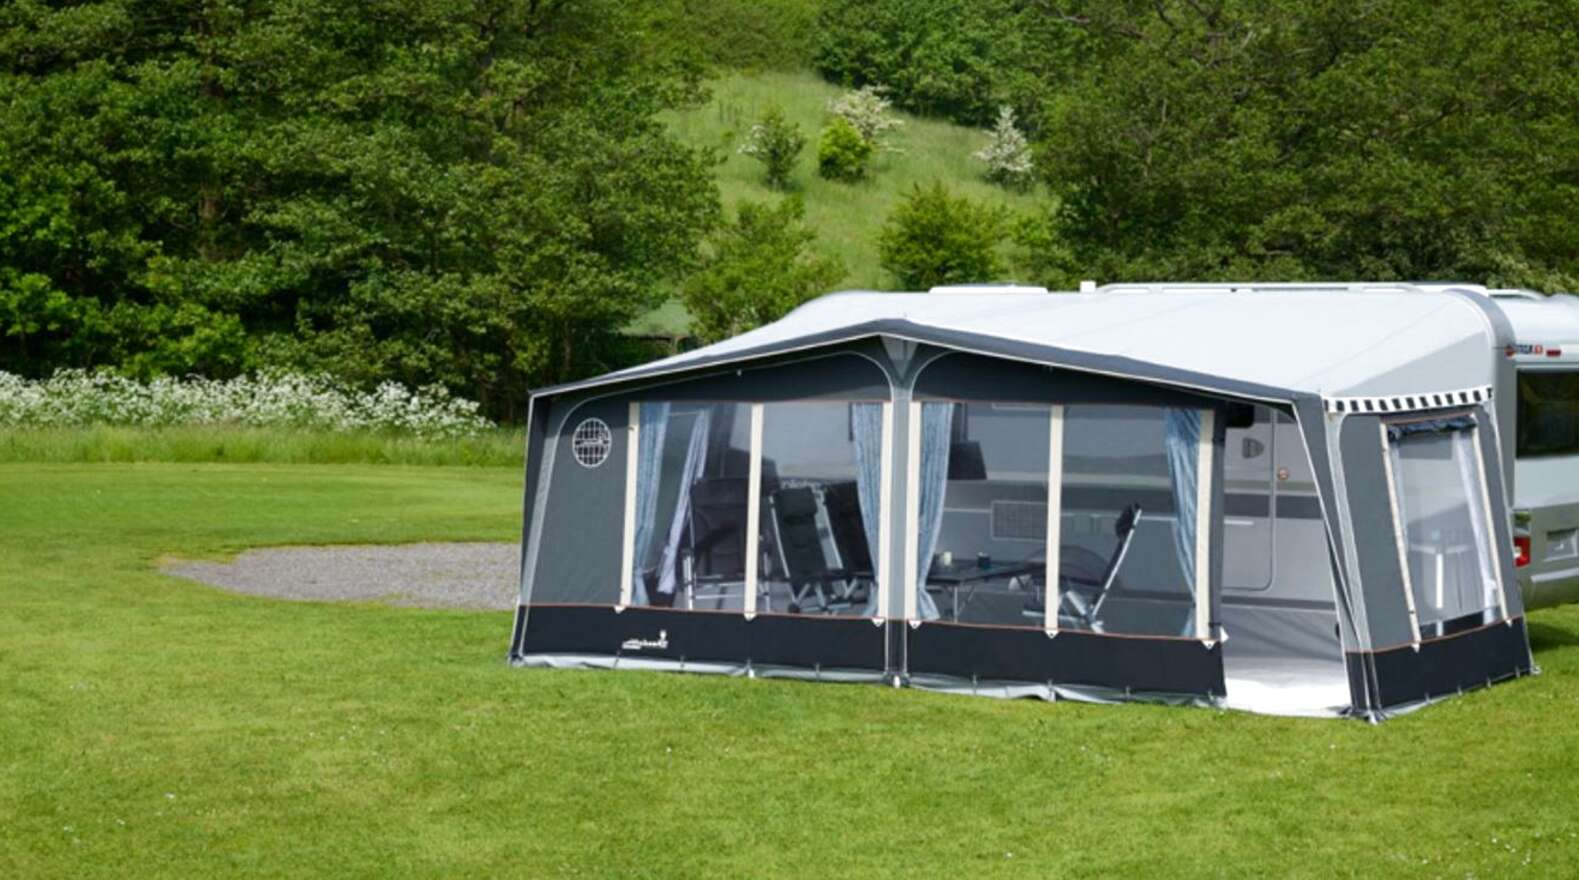 Isabella Awning 1050 for sale in UK | View 45 bargains